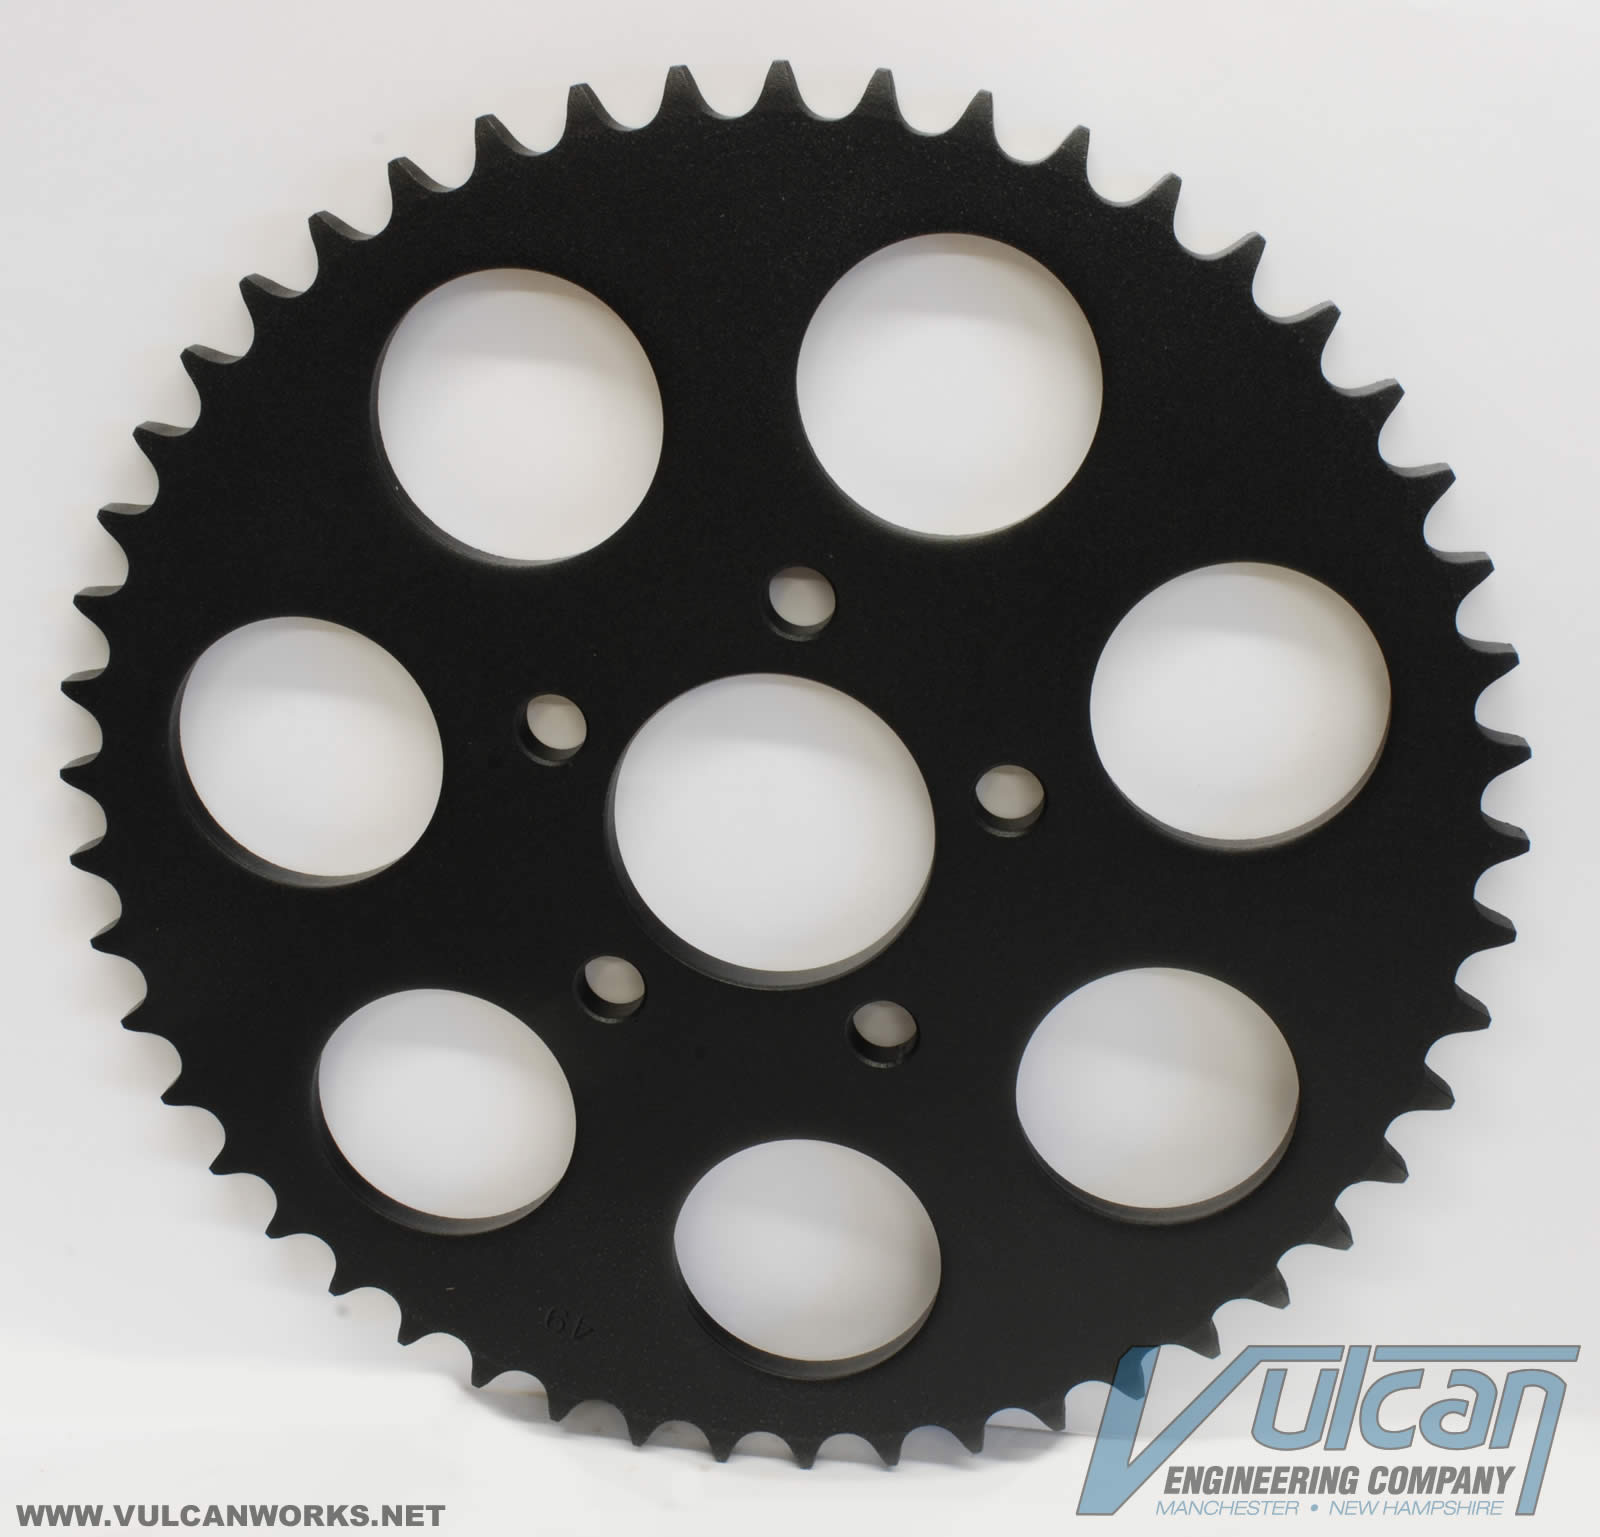 Black Rear Sprocket, 51 Tooth